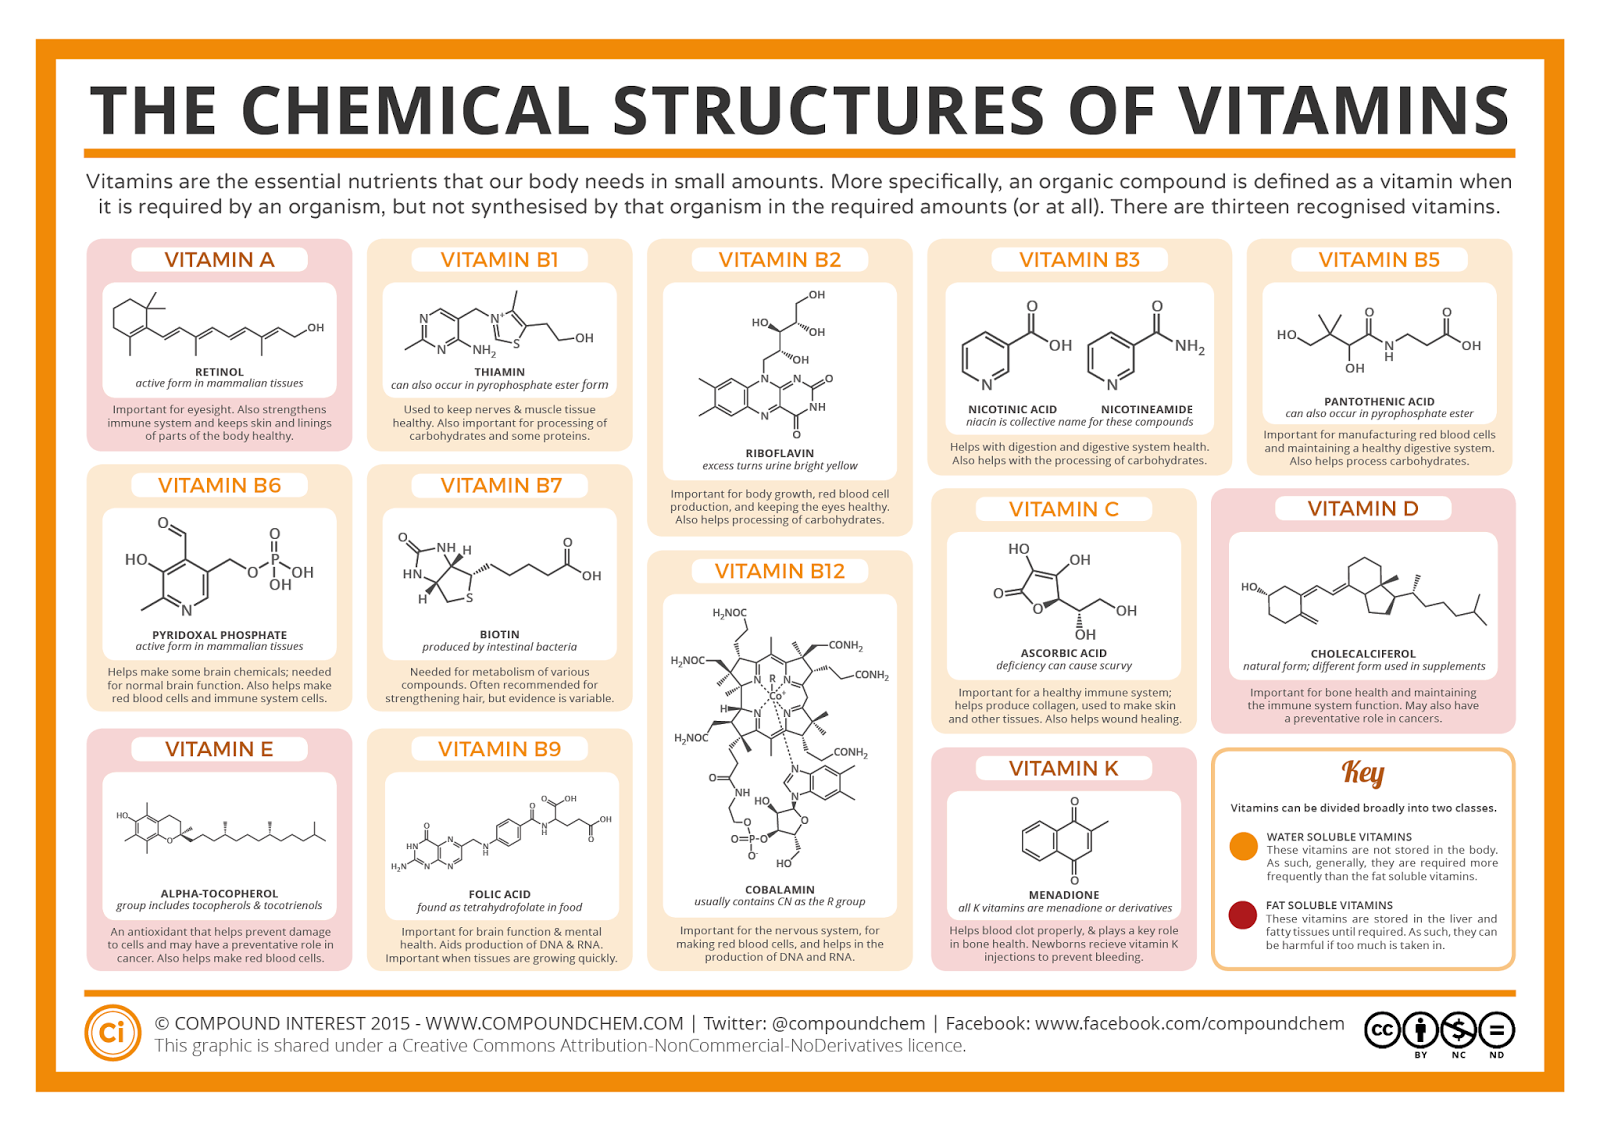 http://www.compoundchem.com/wp-content/uploads/2015/01/Chemical-Structures-of-Vitamins-FINAL.png